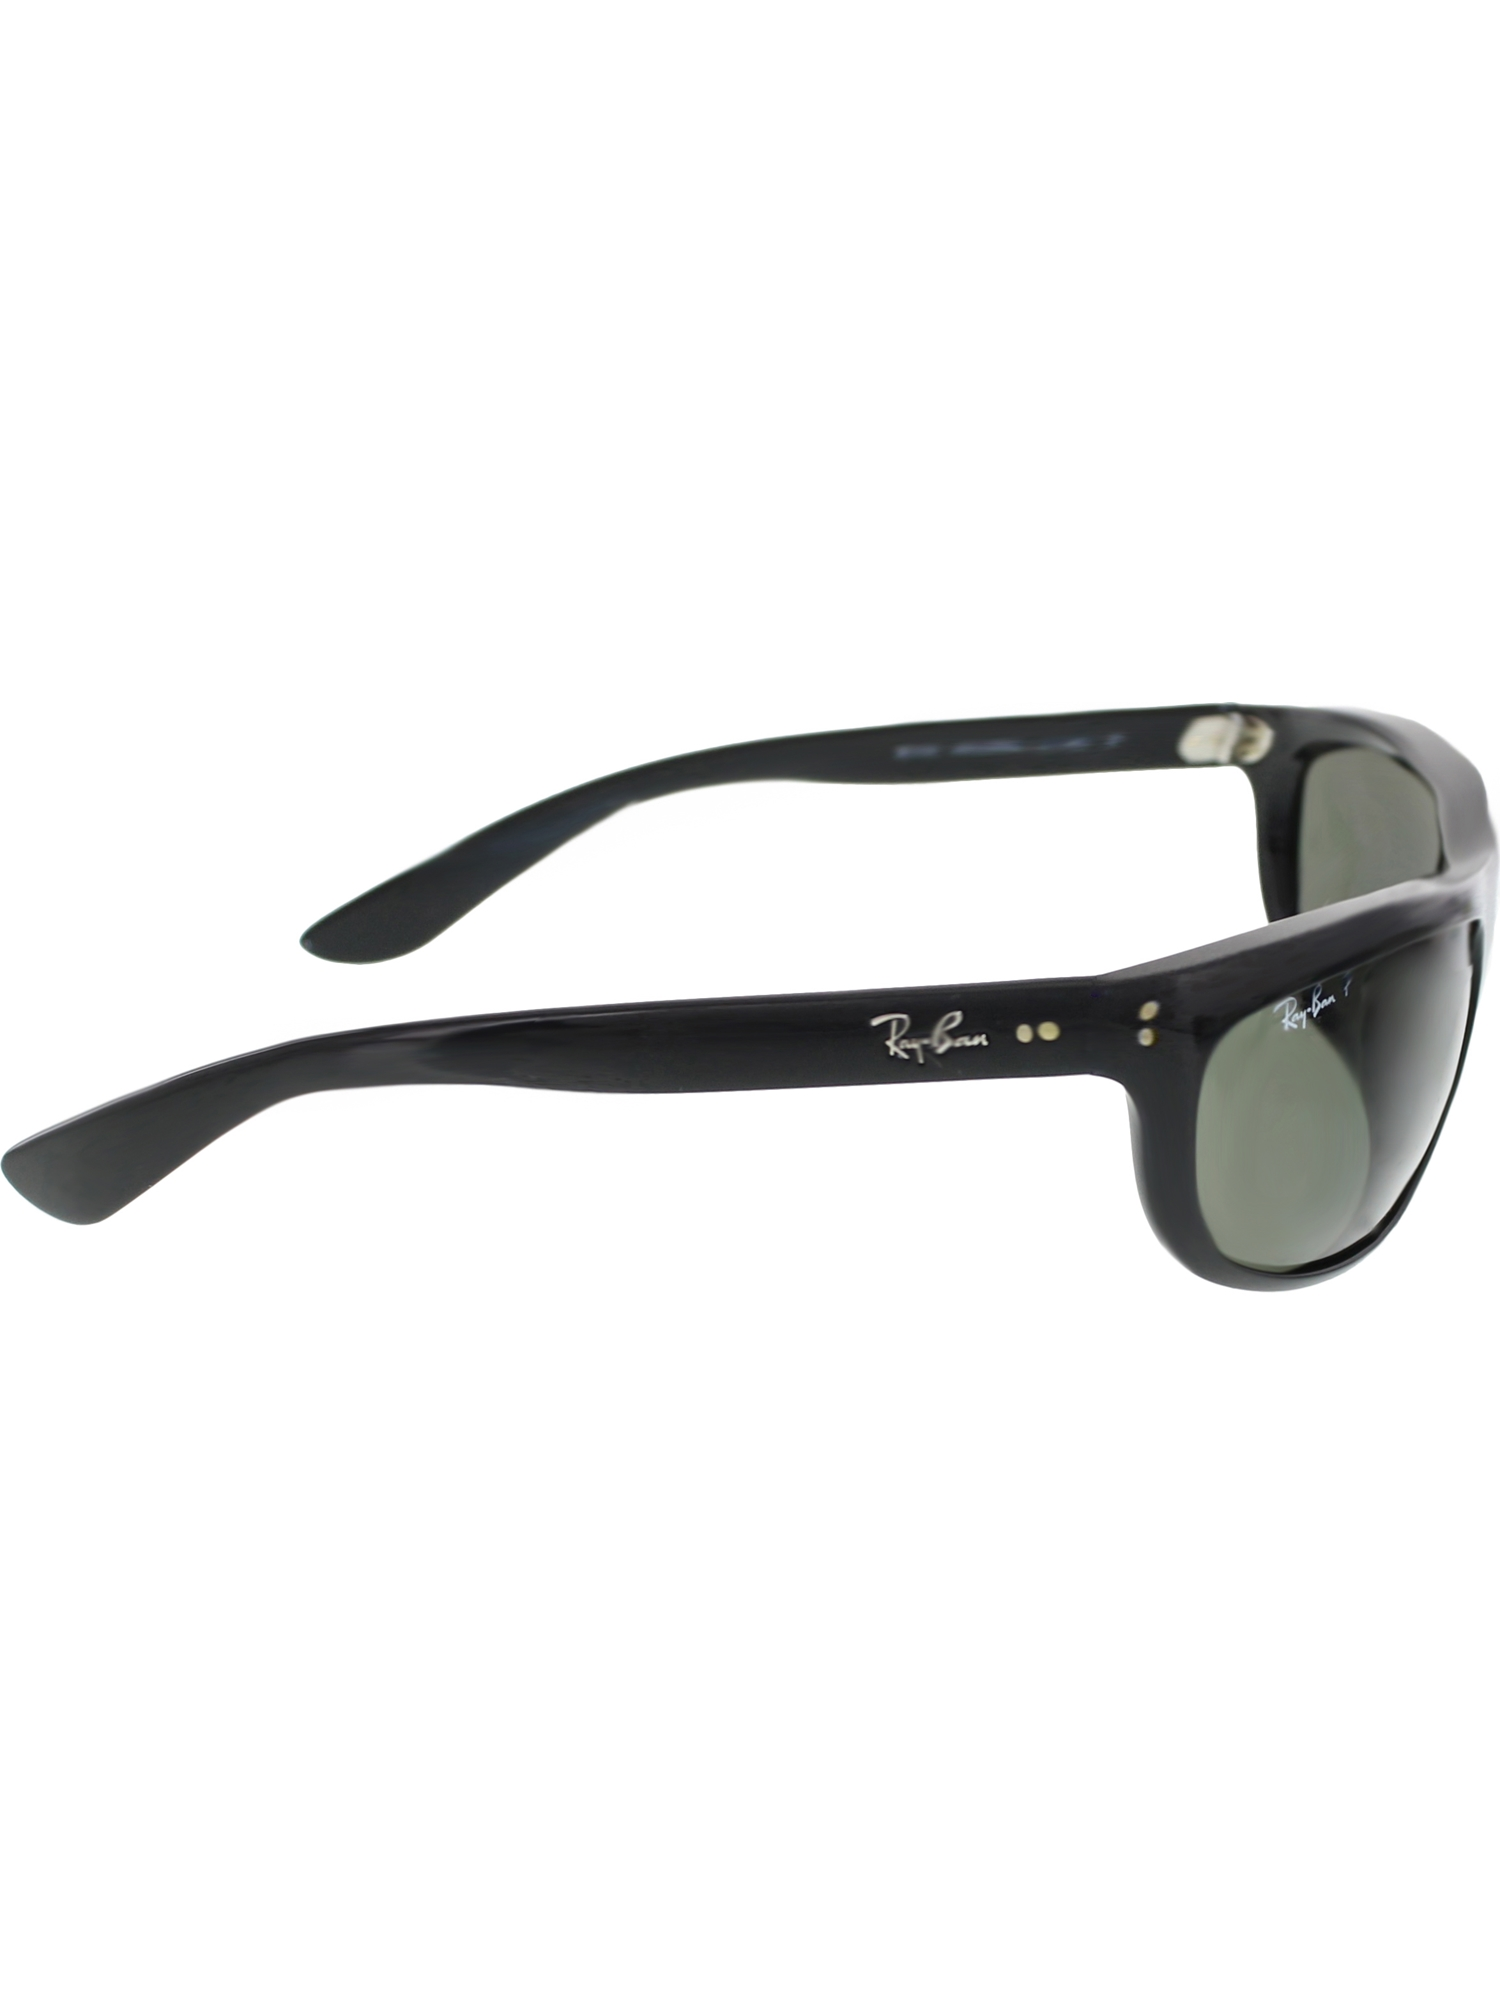 d869f07f03218 Ray-Ban Men s Polarized Balorama RB4089-601 58-62 Black Rectangle  Sunglasses zoomed image